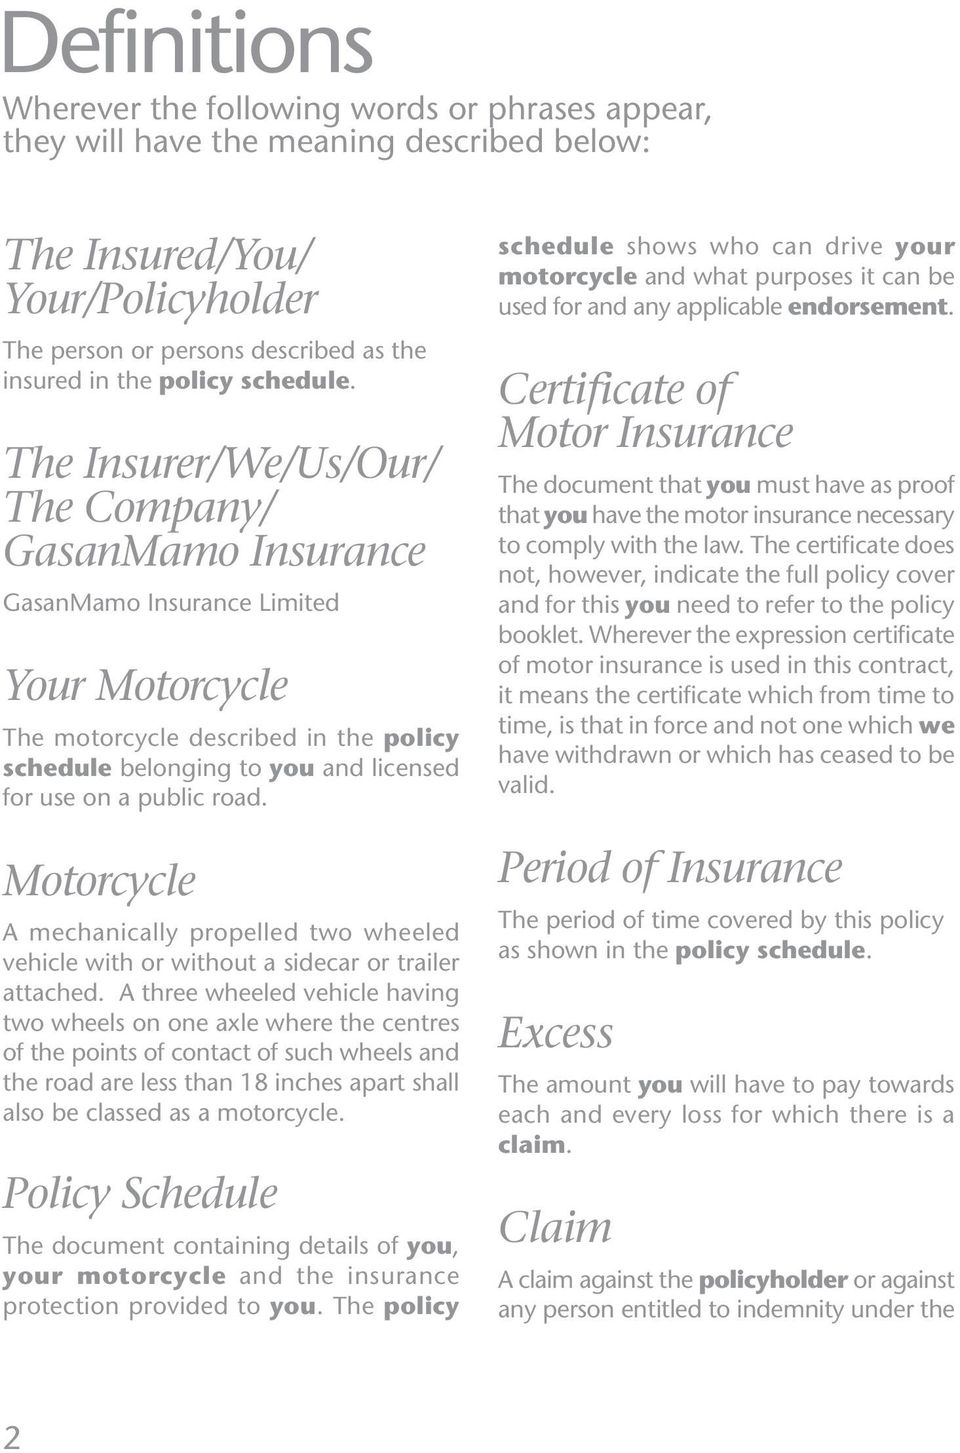 The Insurer/We/Us/Our/ The Company/ GasanMamo Insurance GasanMamo Insurance Limited Your Motorcycle The motorcycle described in the policy schedule belonging to you and licensed for use on a public